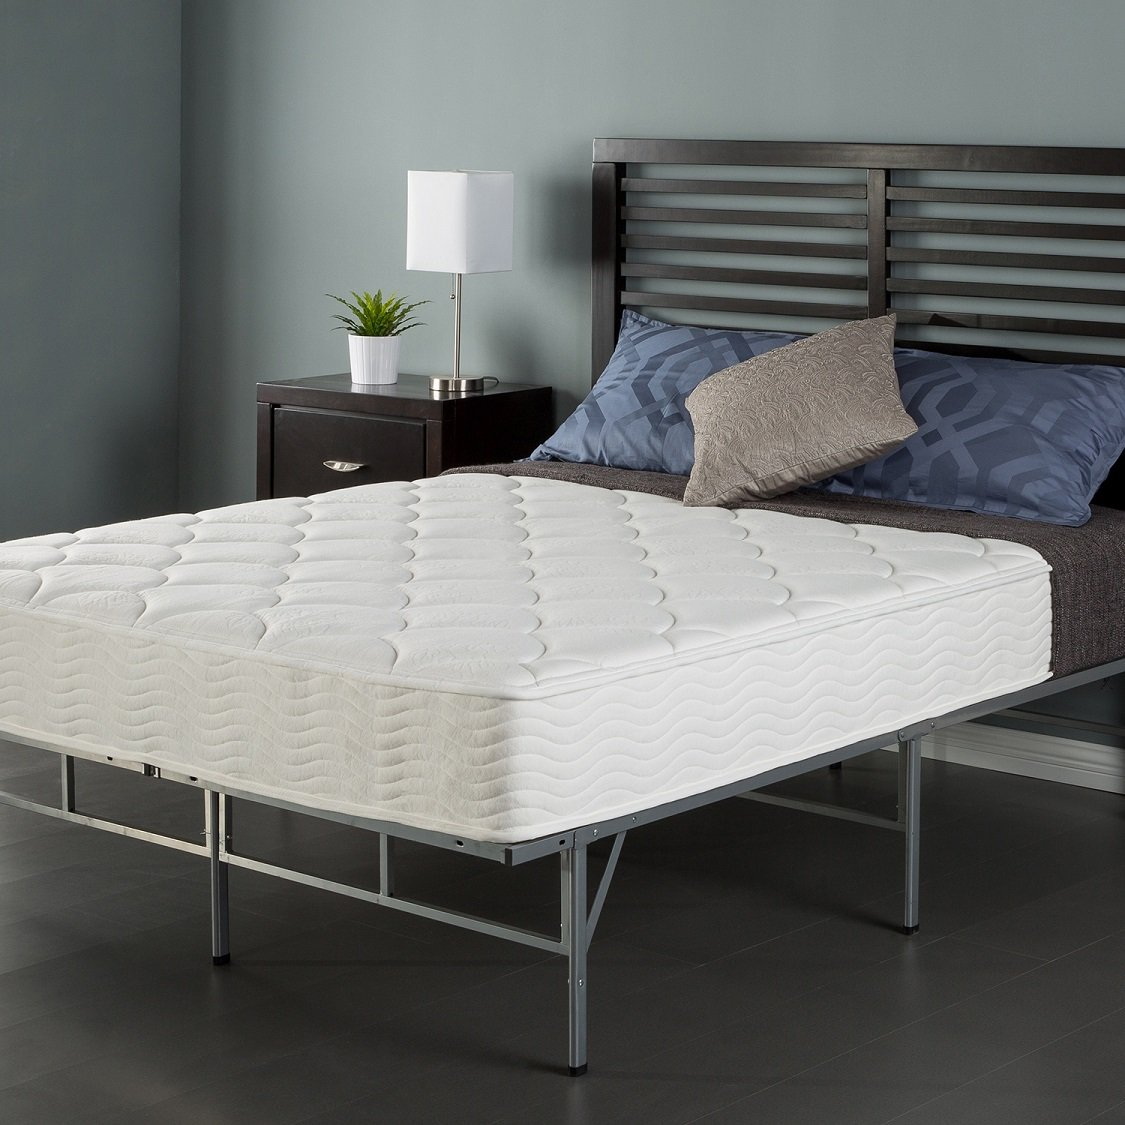 Sleep Master 8'' Coil Mattress and Easy to Assemble Smart Platform Metal Bed Frame, Twin